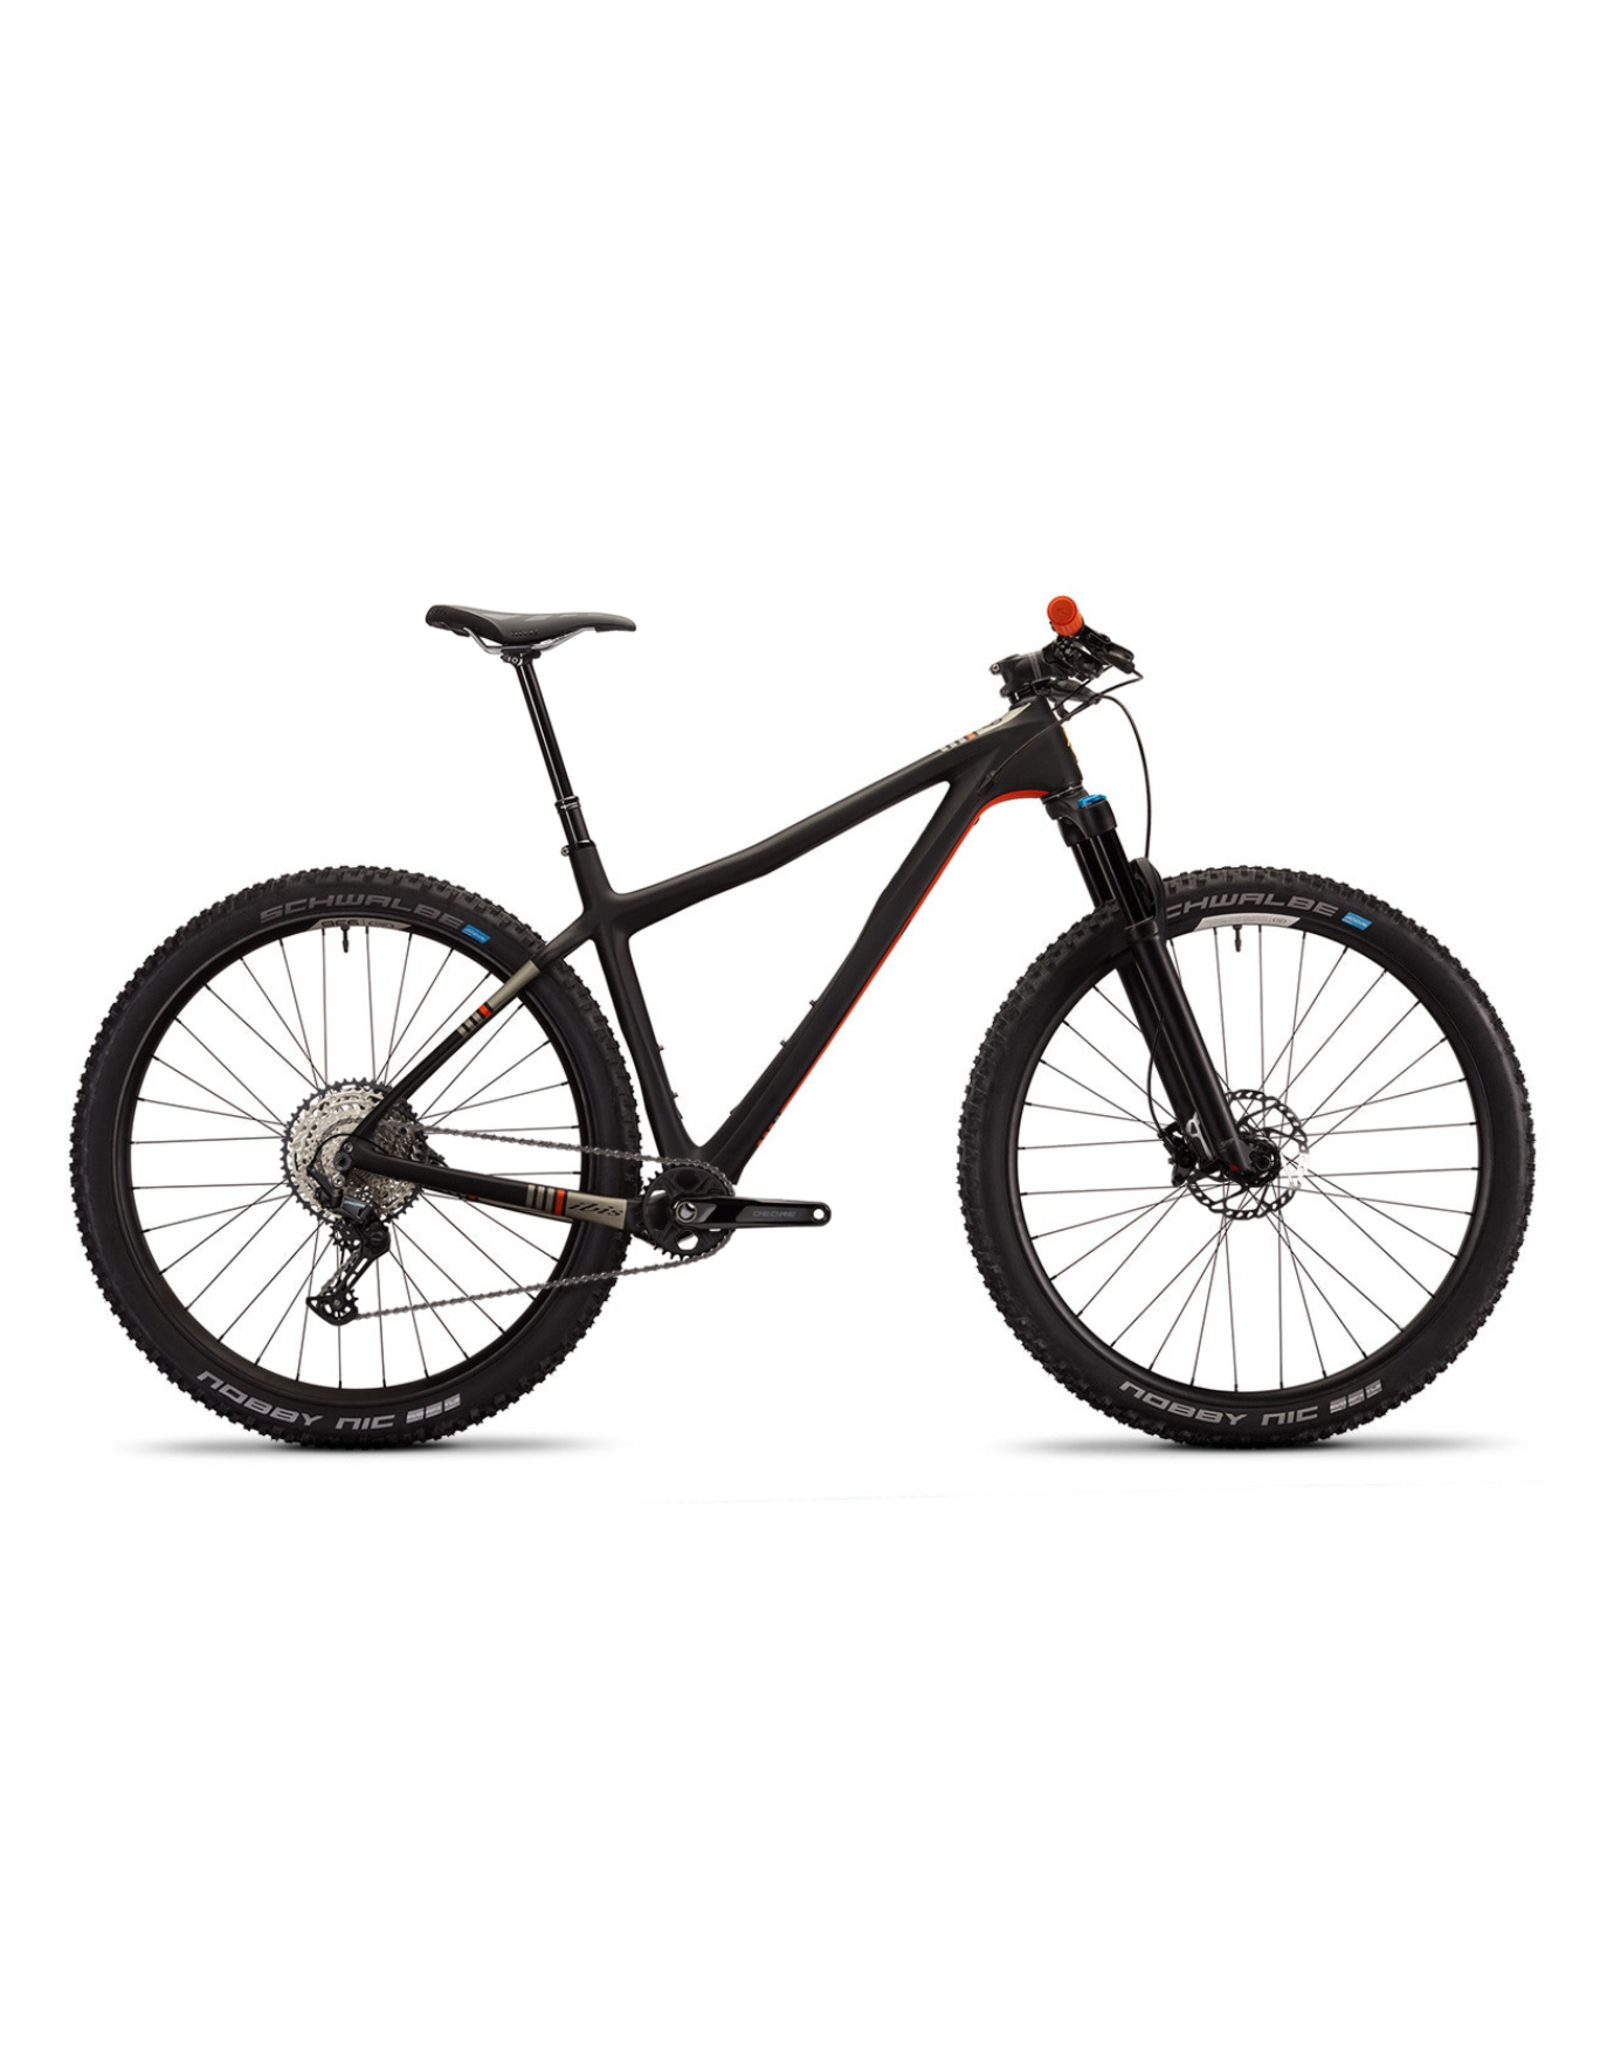 Ibis 2020 Ibis DV9 - Kit Deore 12 vit. / Fox Rhythm / Guidon carbone / Bike yoke